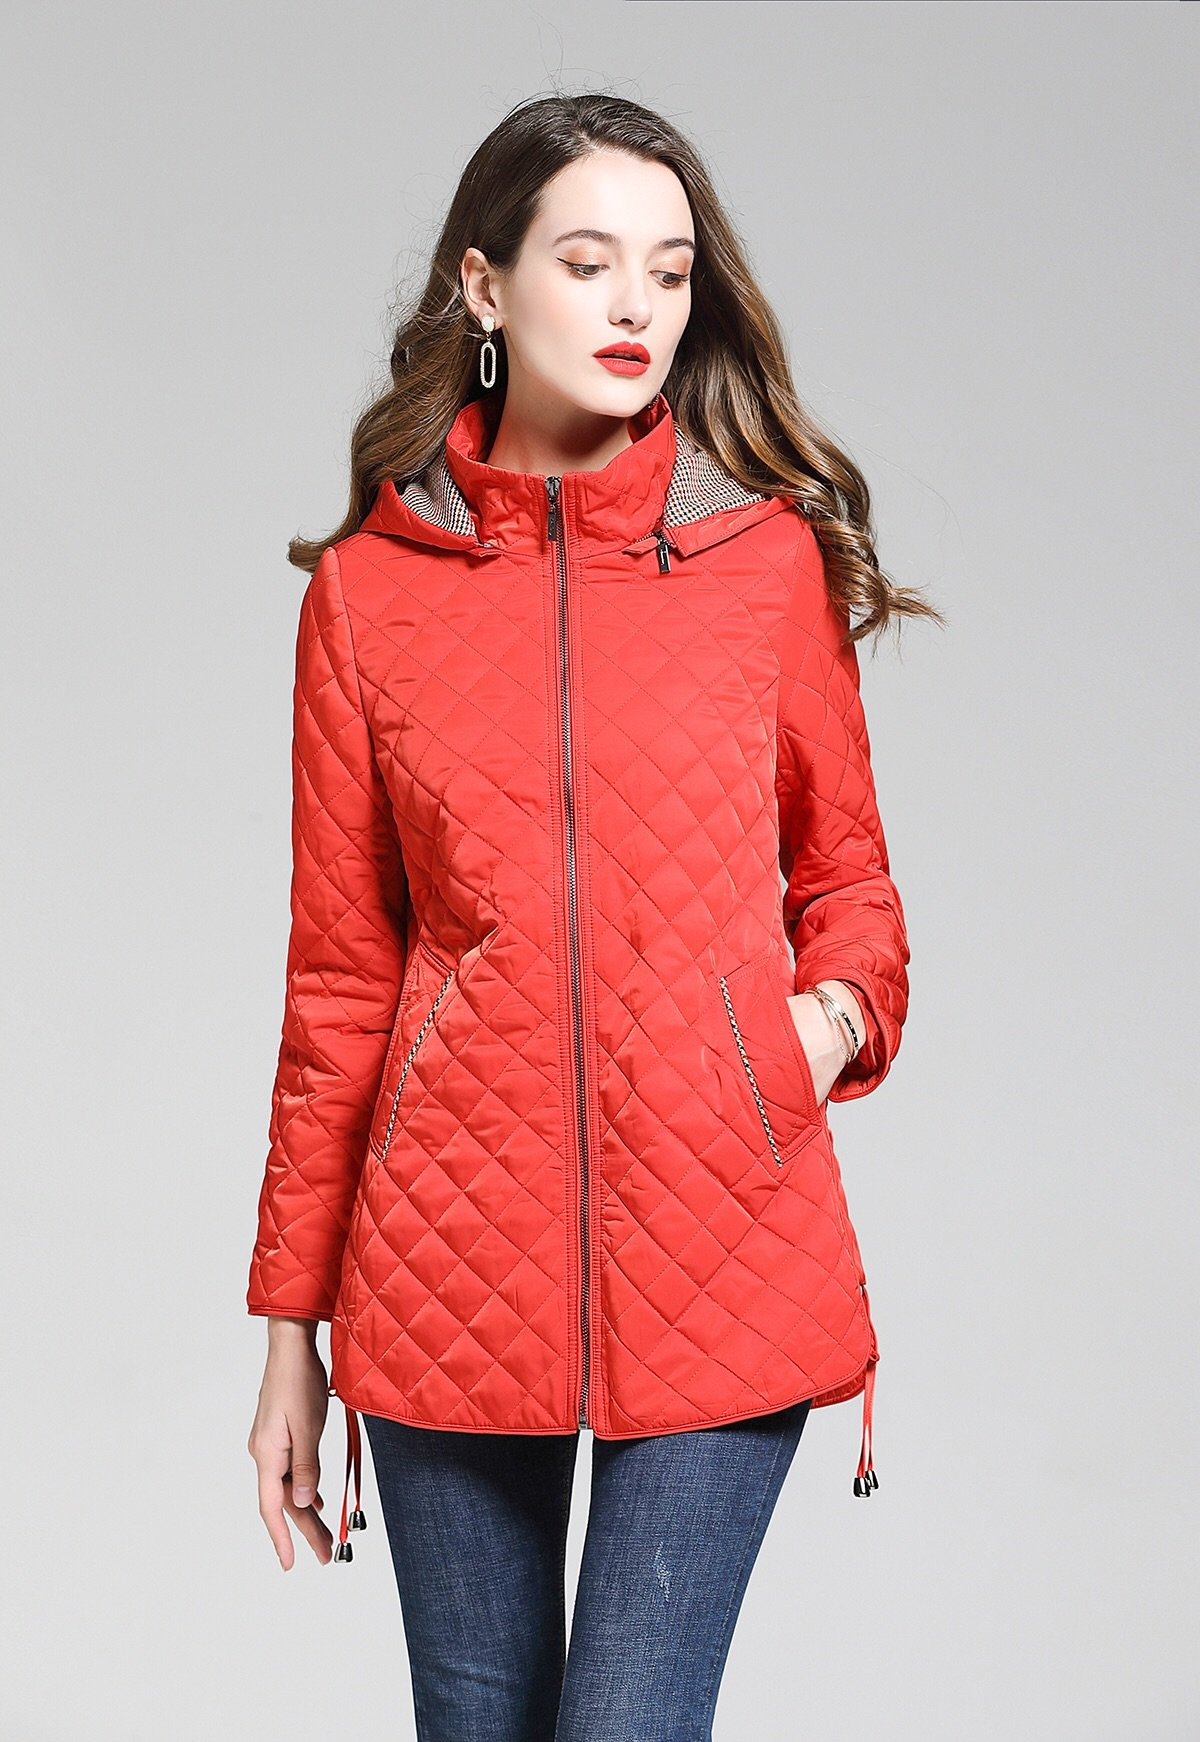 2020 Burberry Diamond Quilted Down Jackets With Detachable Hood For Women # 228709, cheap Burberry Jackets For Women, only $110!